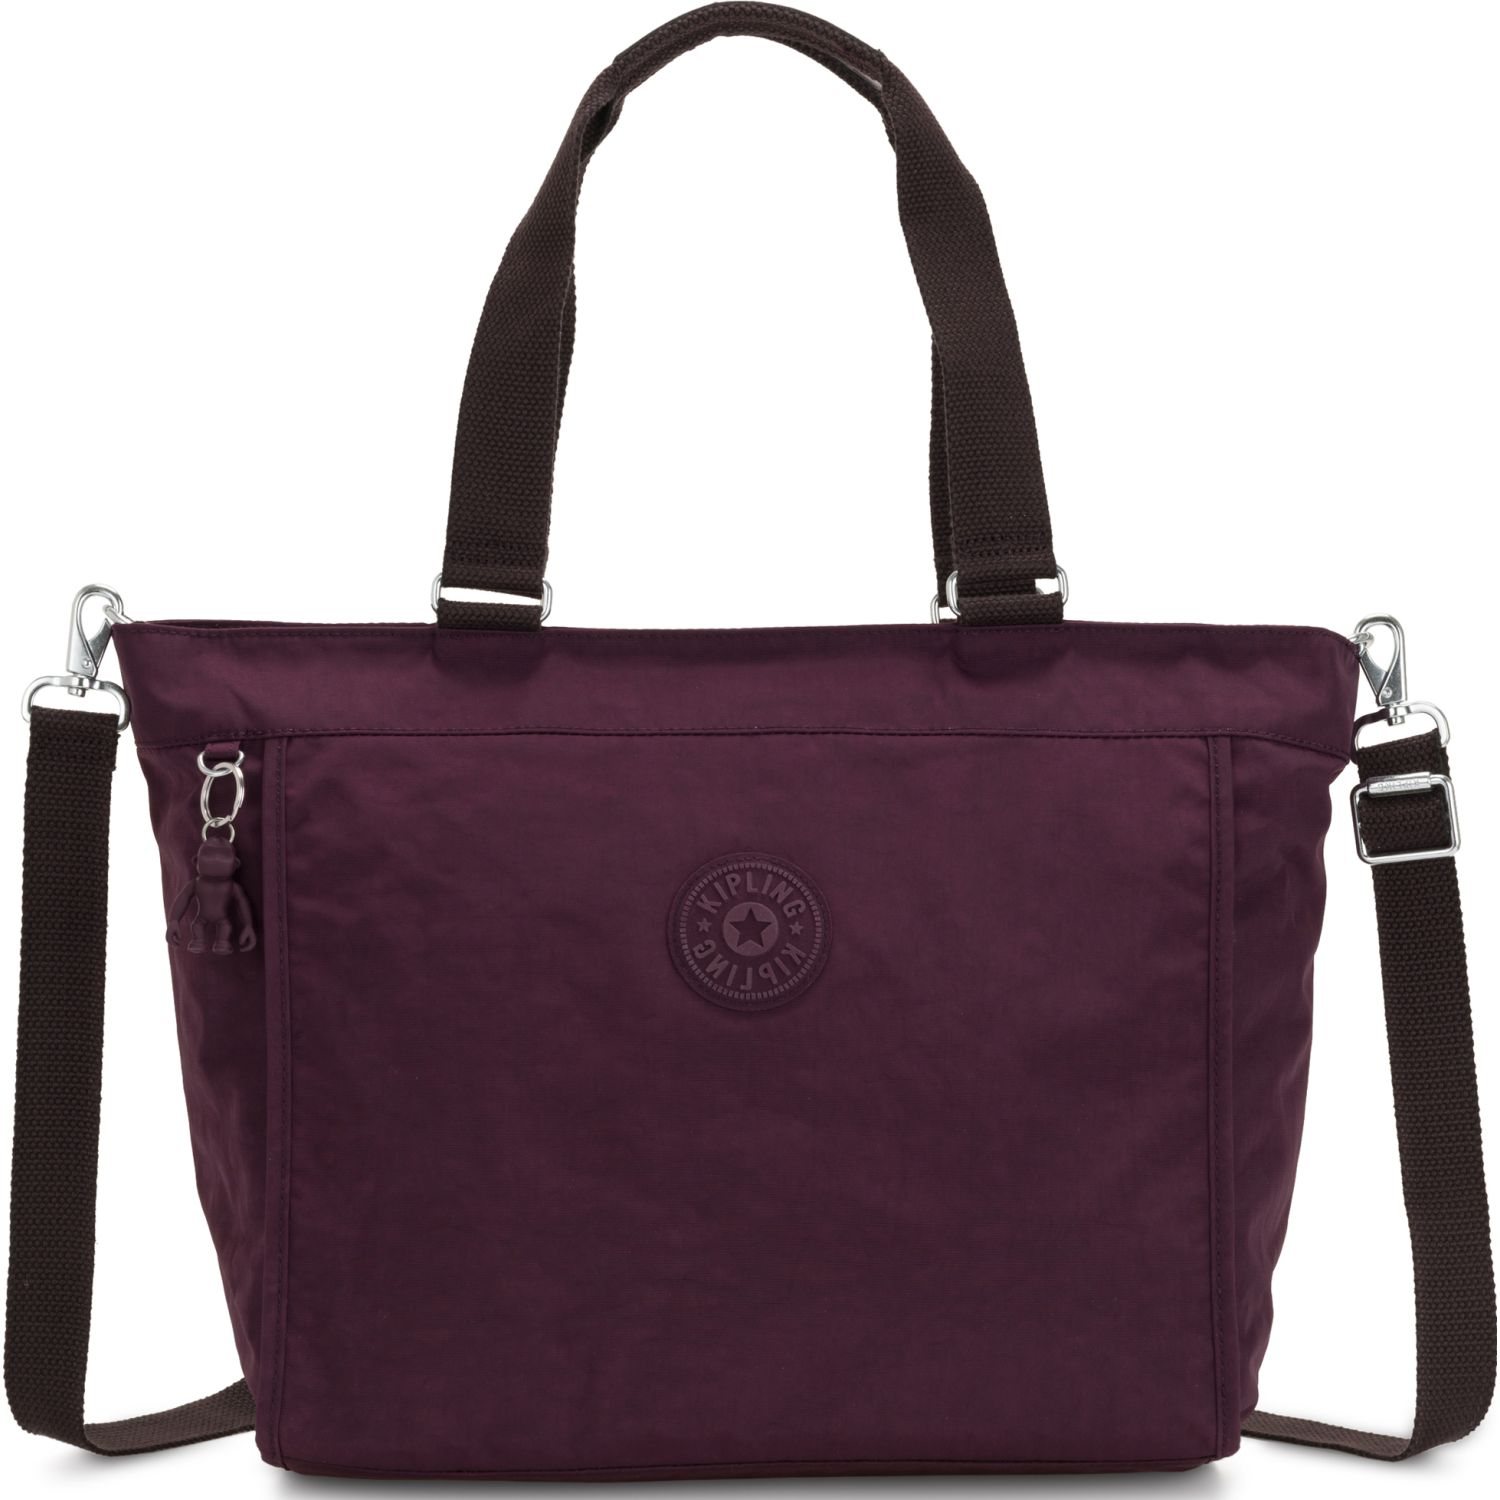 Kipling Cartera New Shopper L Morado Carteras con Asa